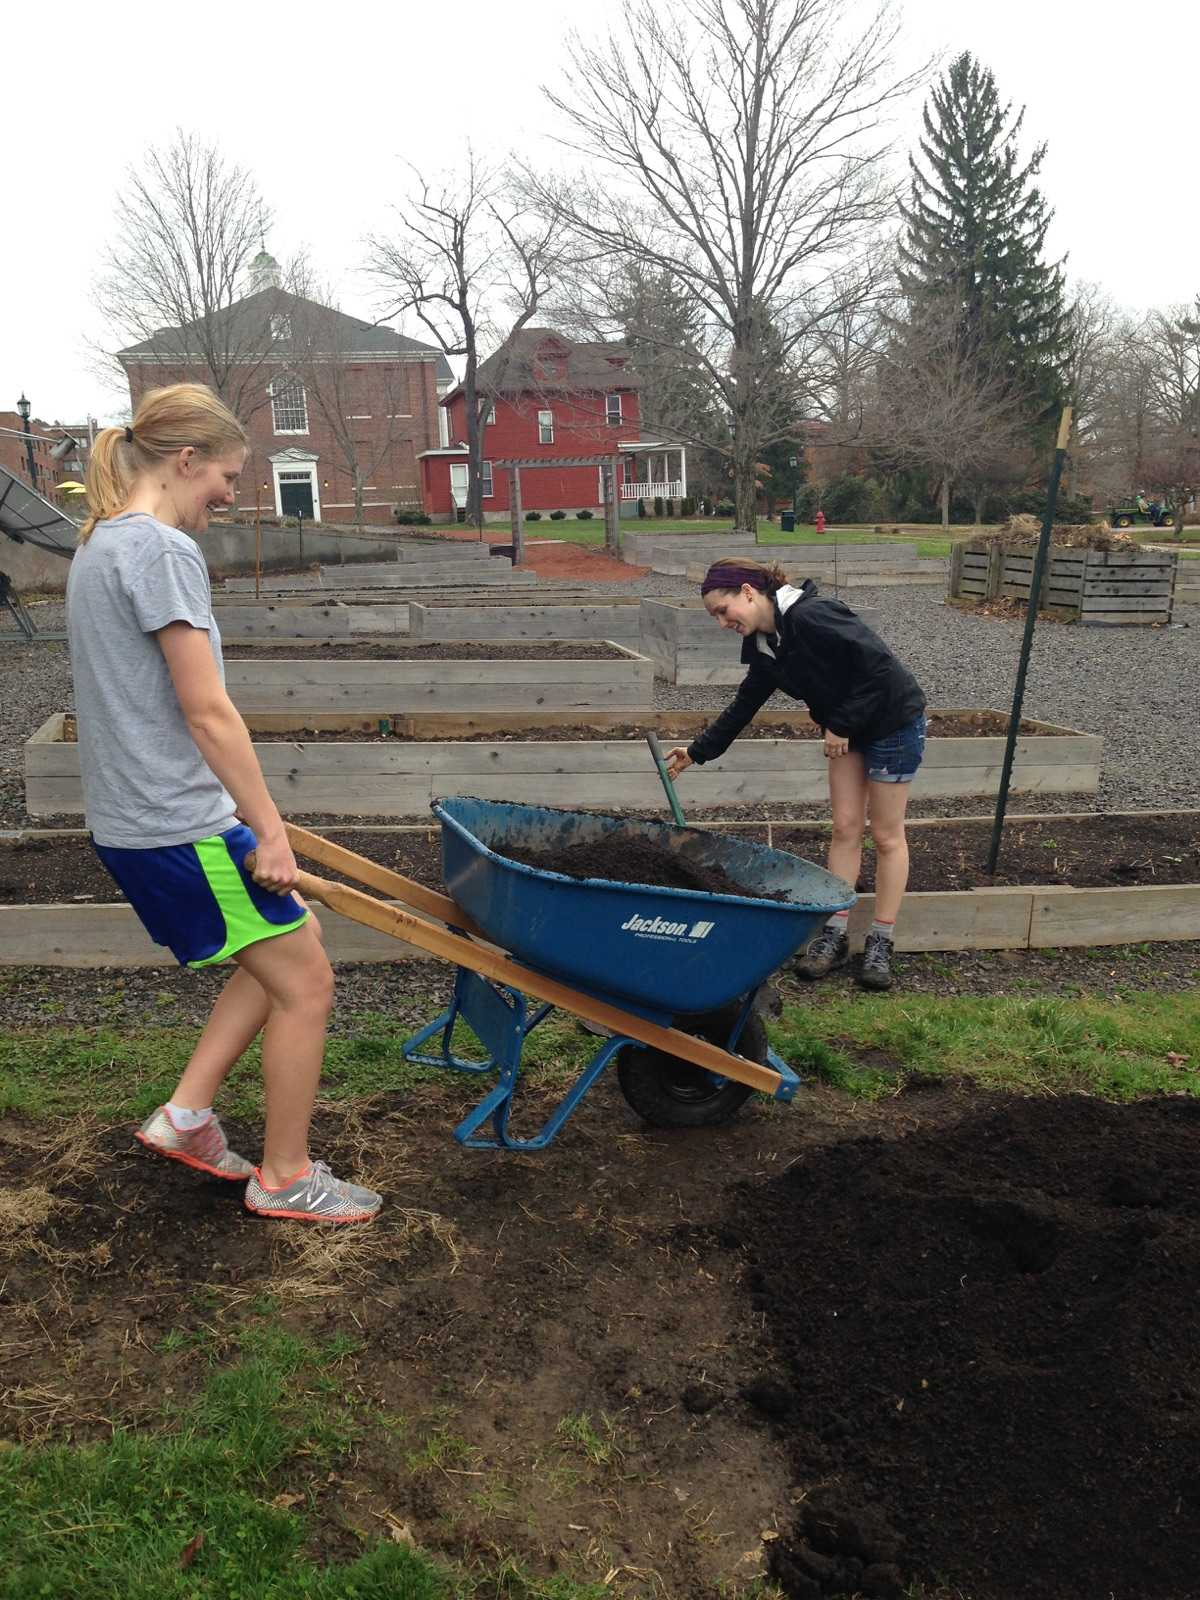 Kelsey Terhune-Cotter, '18, (left) and Kristen Locy, '18, (right) are two of the students who contribute to upkeeping the school garden, otherwise called the Carrden.